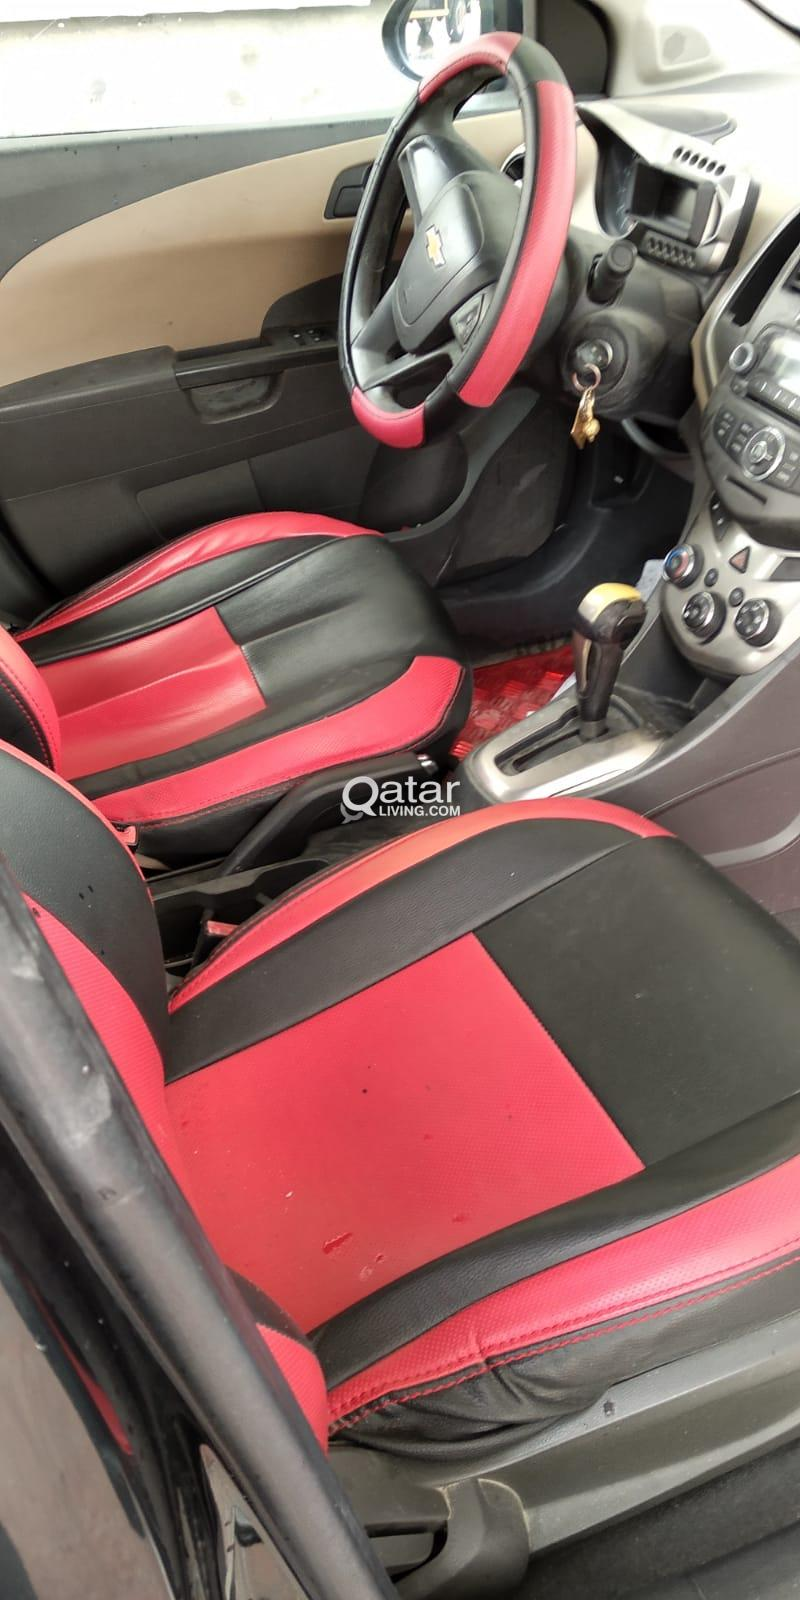 CHEVROLET SONIC FOR SALE IN VERY GOOD CONDITION